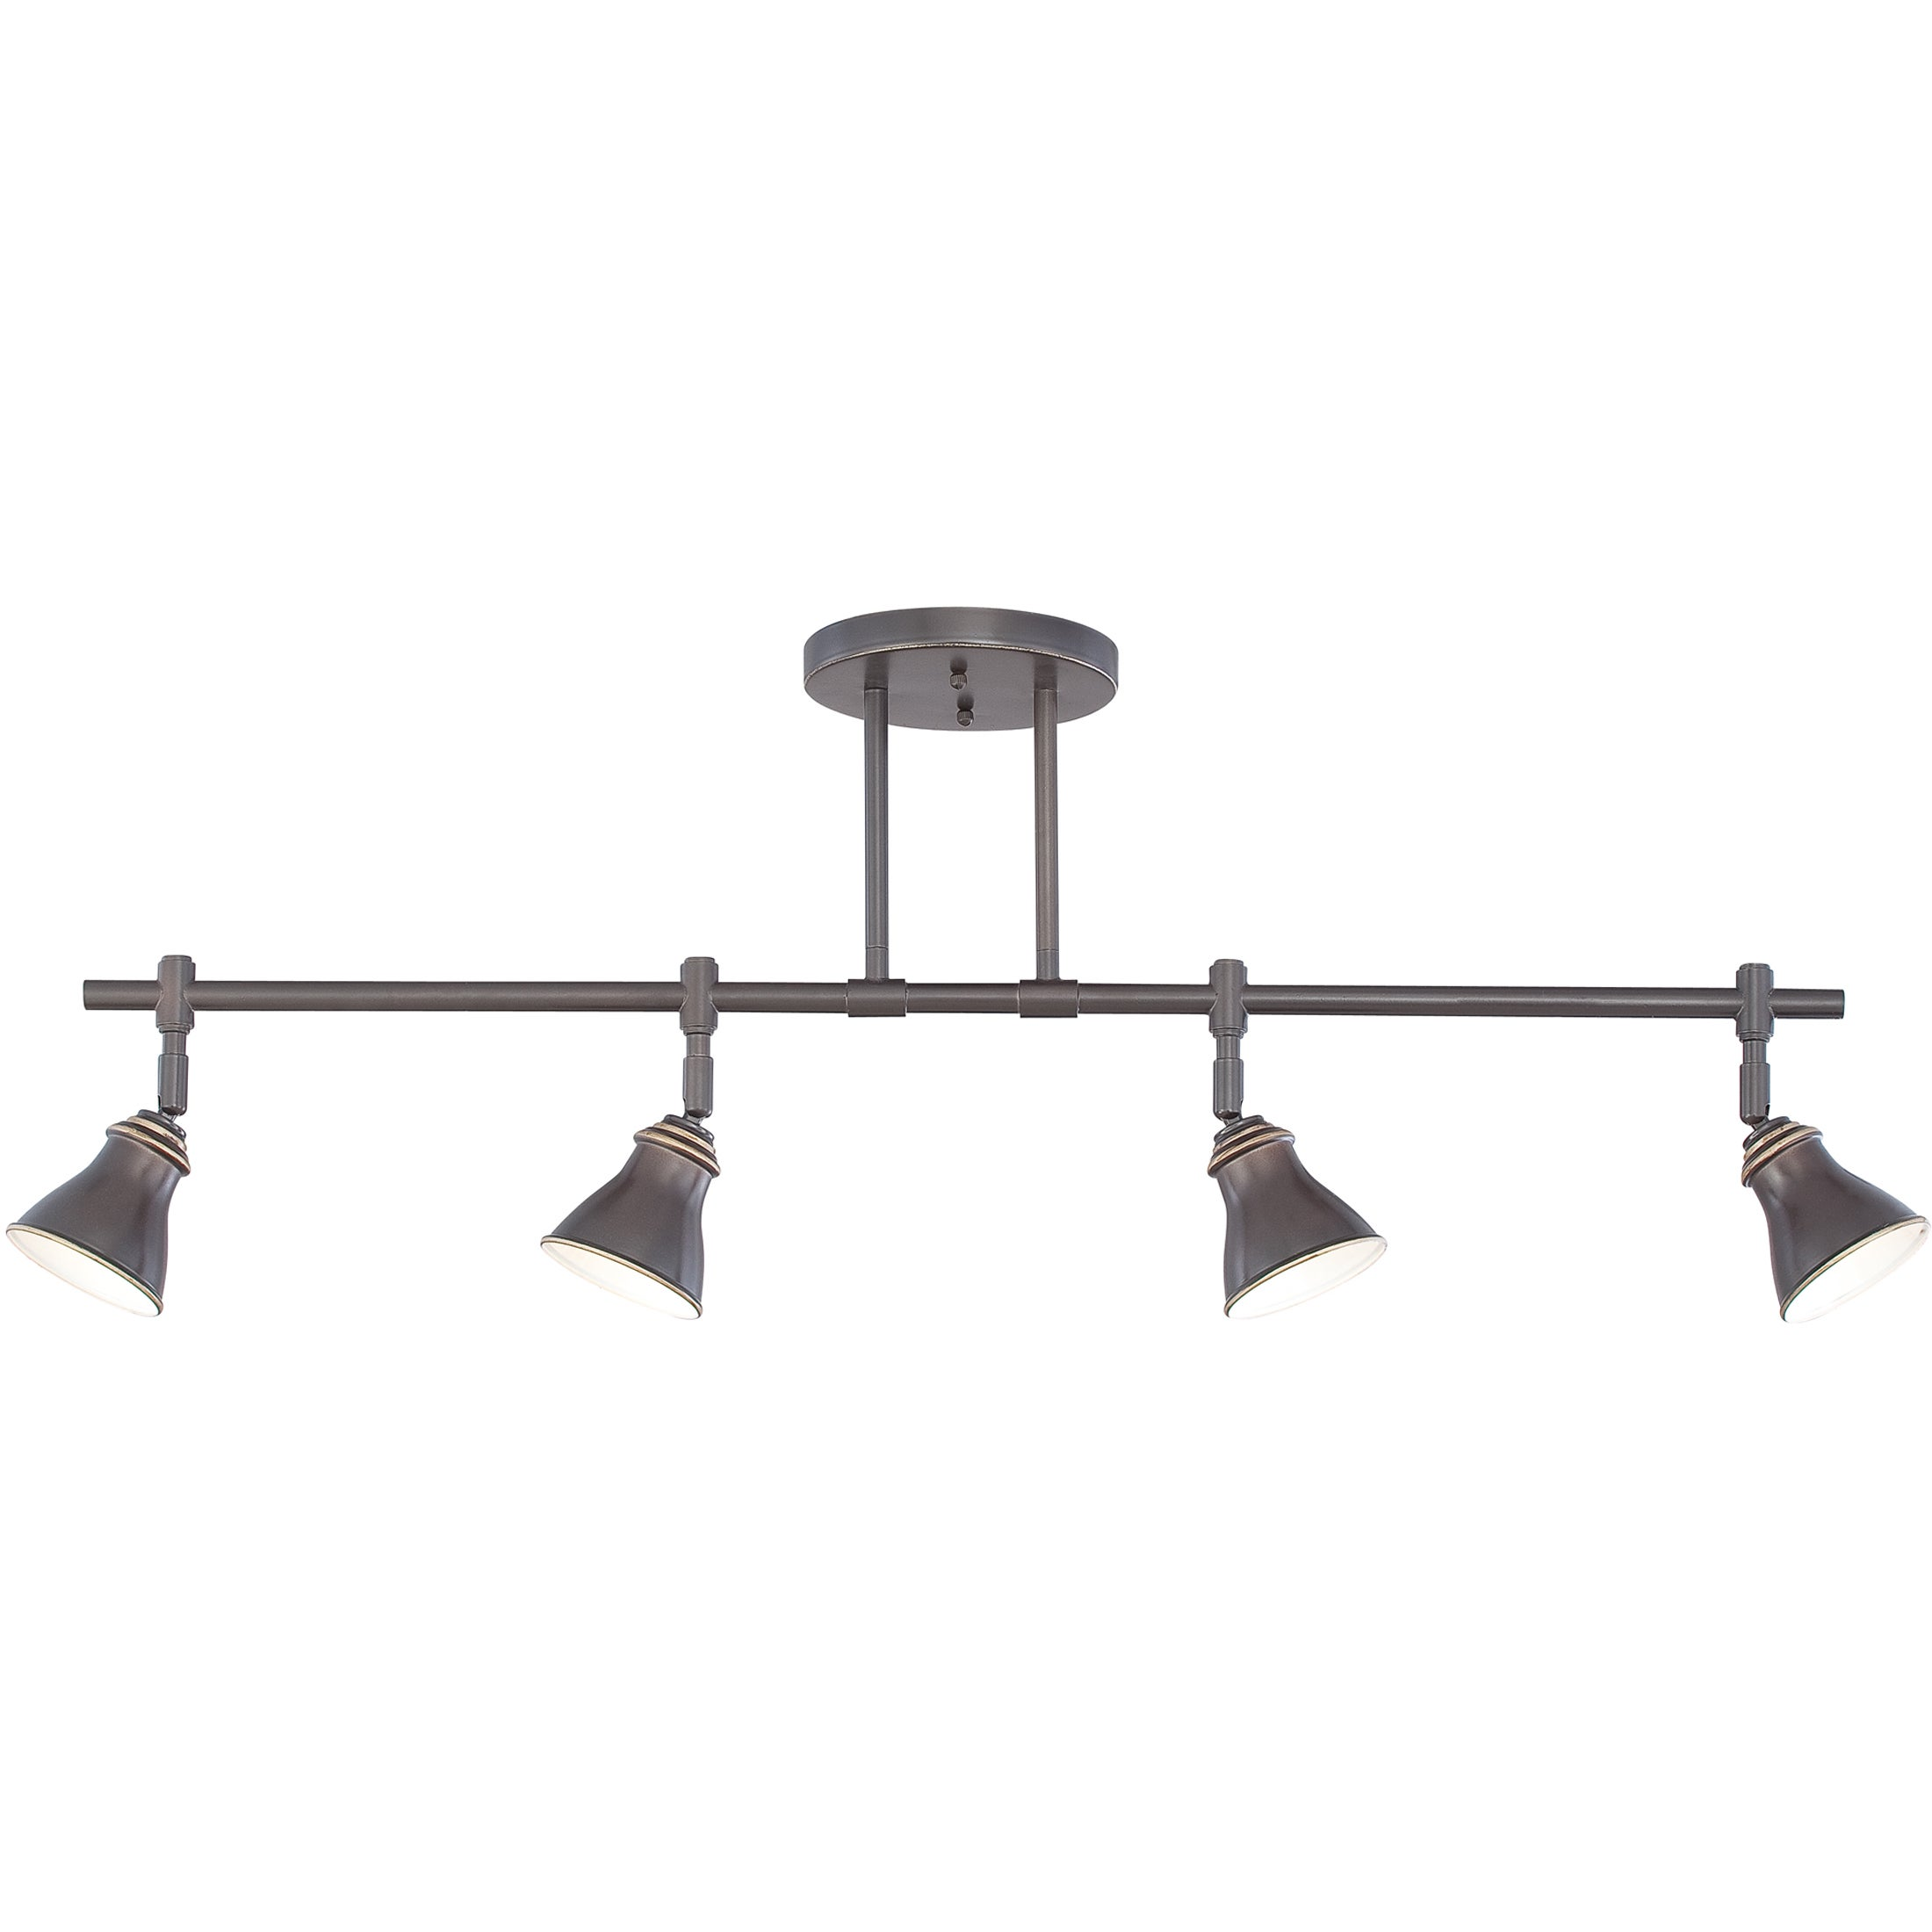 Quoize Denning 4 Light Palladian Bronze Finish Fixed Track Free Shipping Today 8965324